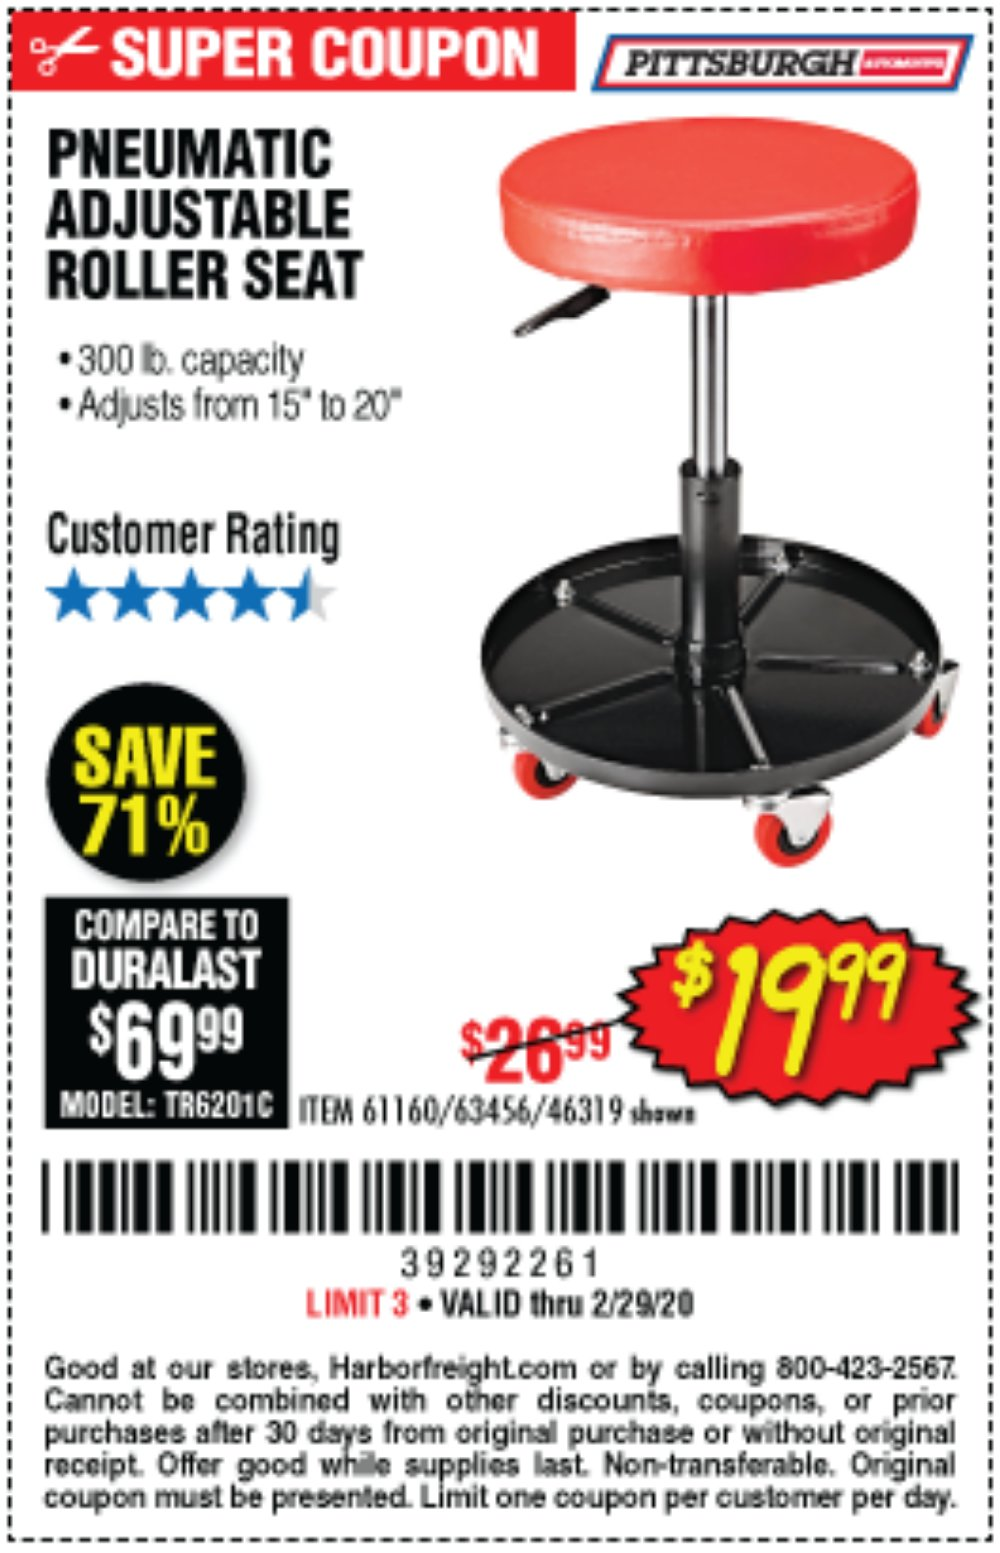 Harbor Freight Coupon, HF Coupons - Mechanic's Roller Seat, Pneumatic Adjustable Roller Seat